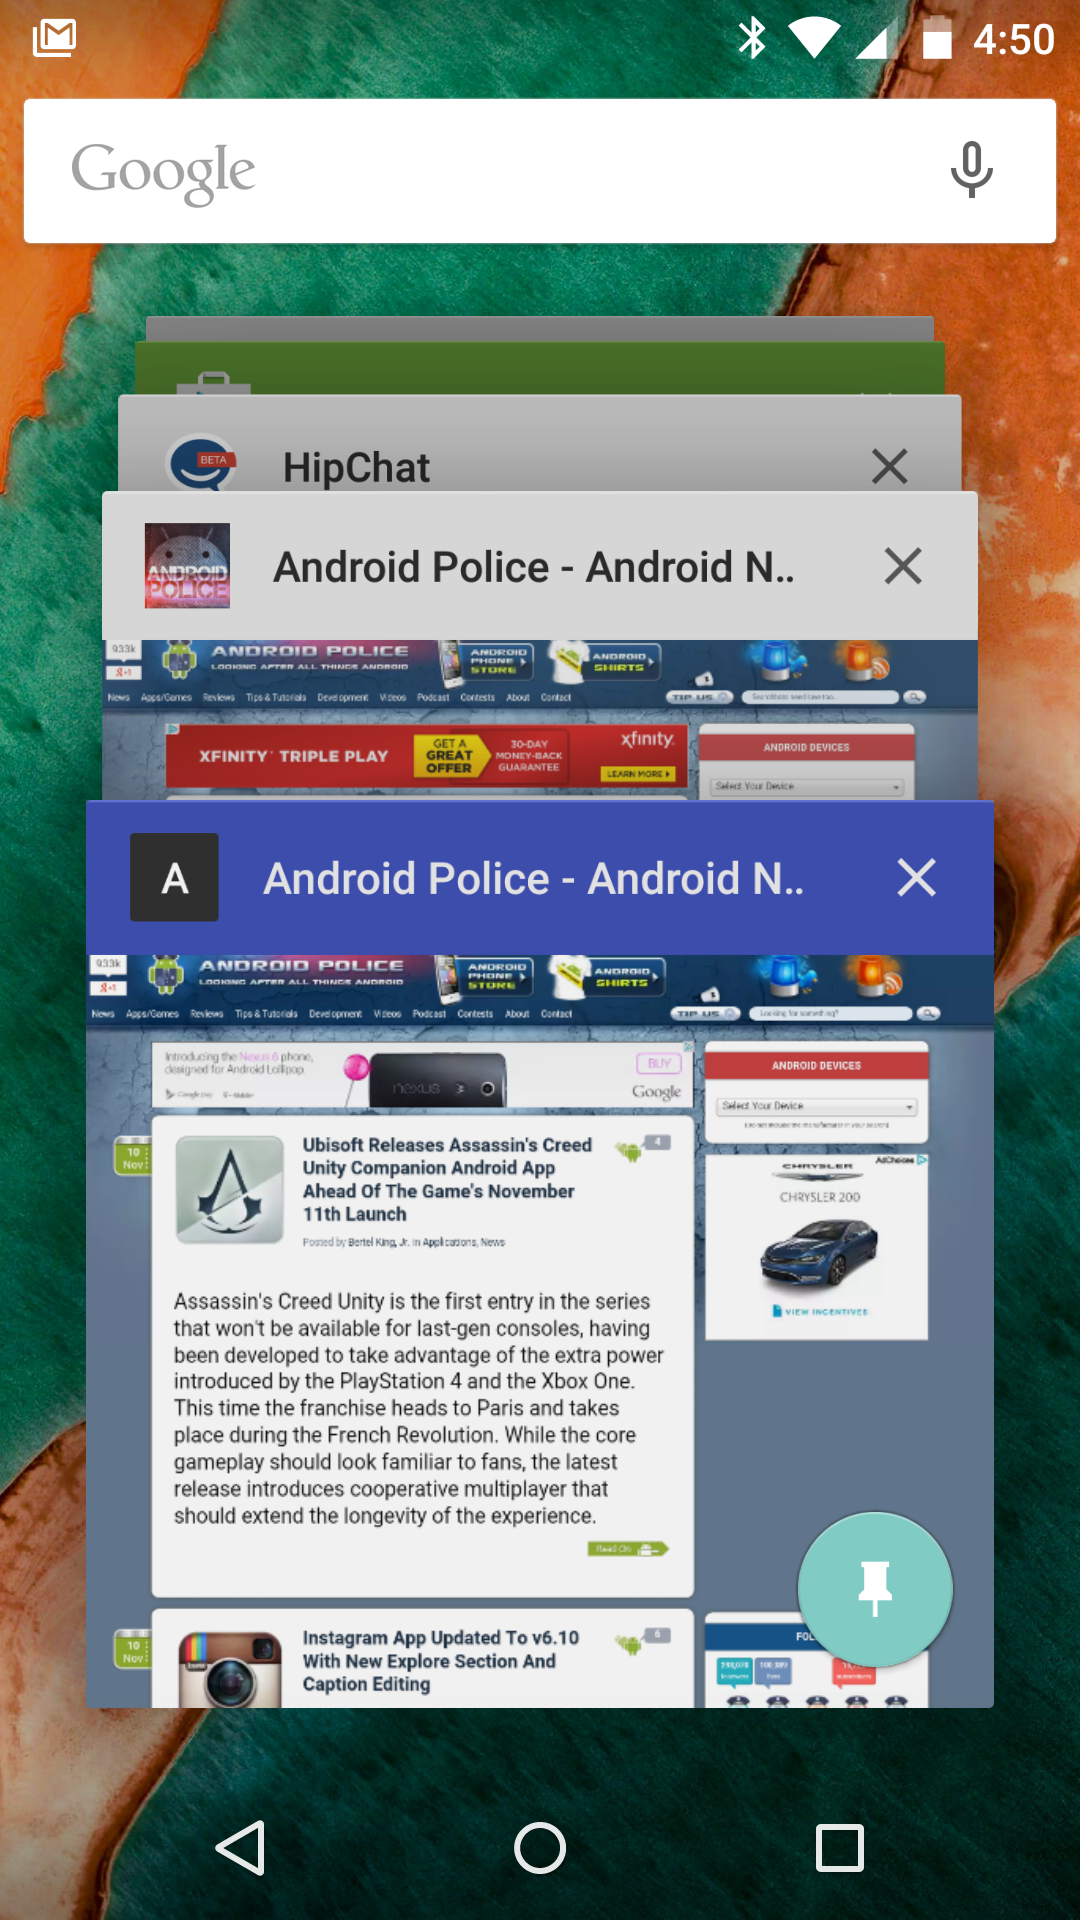 Google android theme for chrome - 2014 11 10 22 50 54